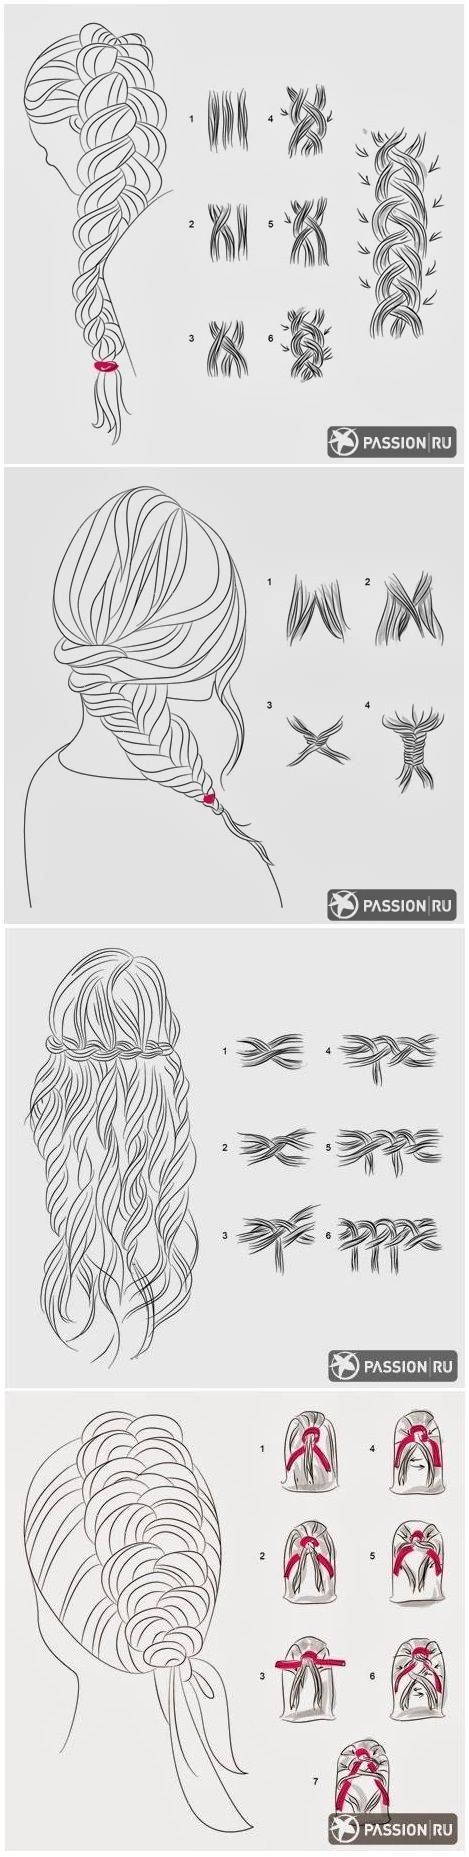 Easy braid tutorials